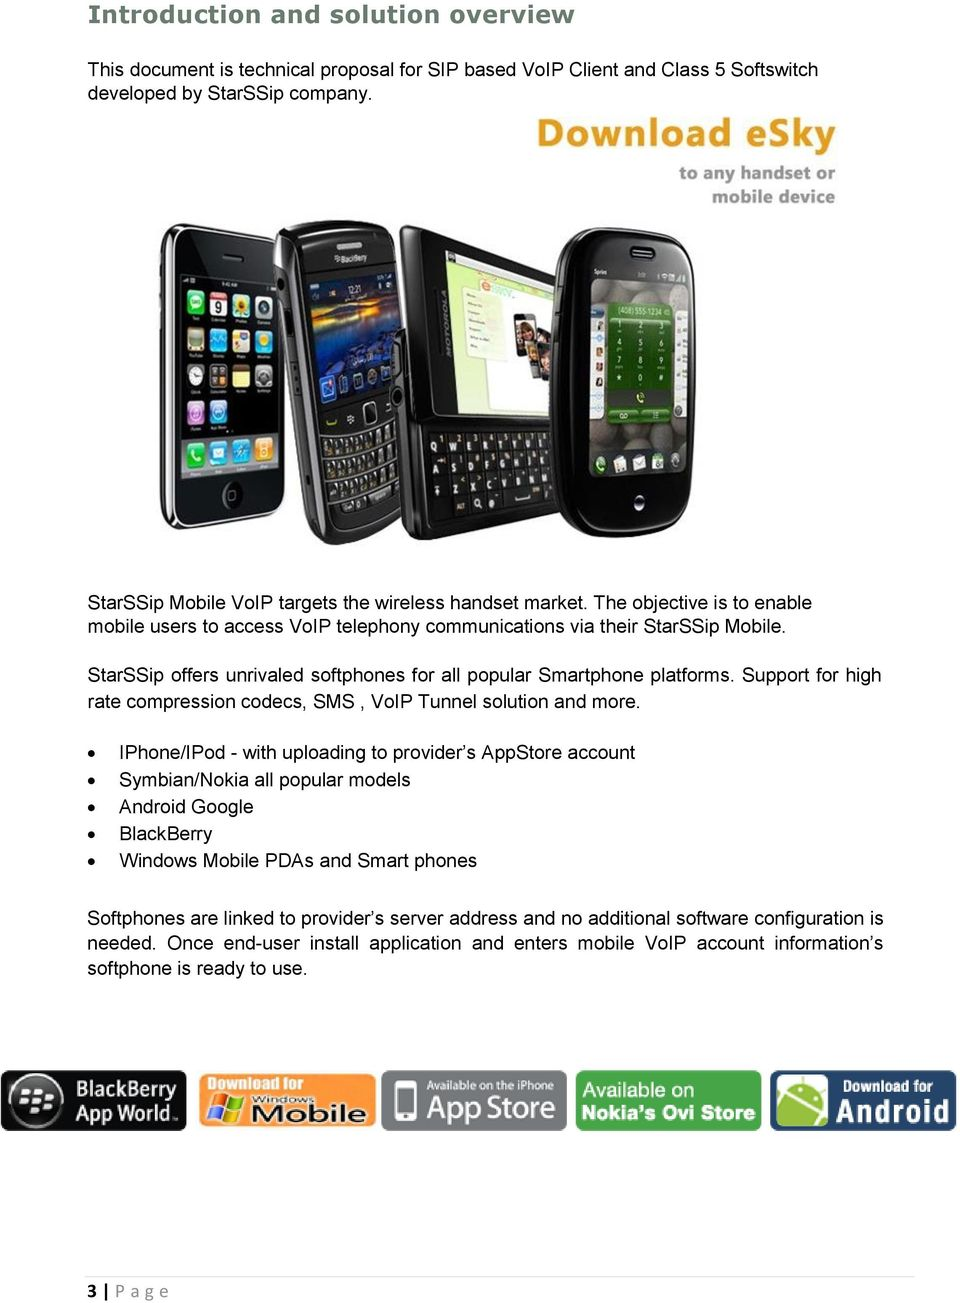 StarSSip offers unrivaled softphones for all popular Smartphone platforms. Support for high rate compression codecs, SMS, VoIP Tunnel solution and more.